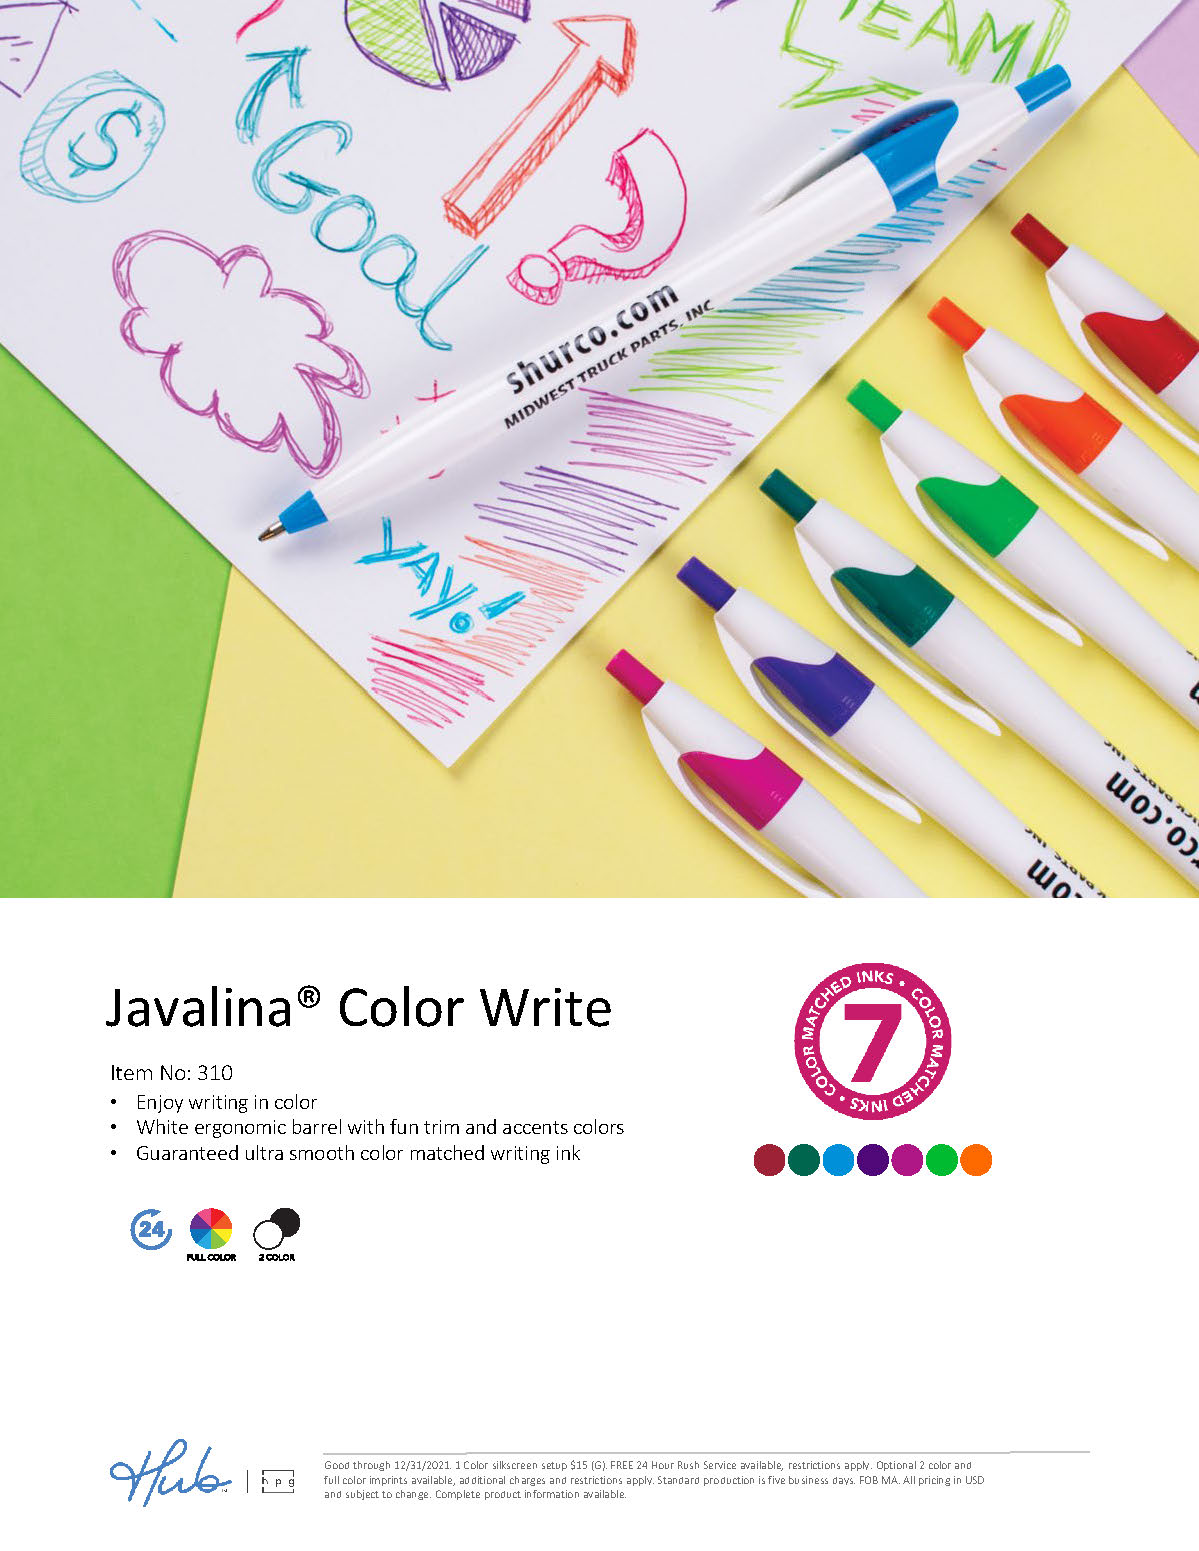 The NEW Javalina Comfort Write pen with a soft touch finish and color matched ink